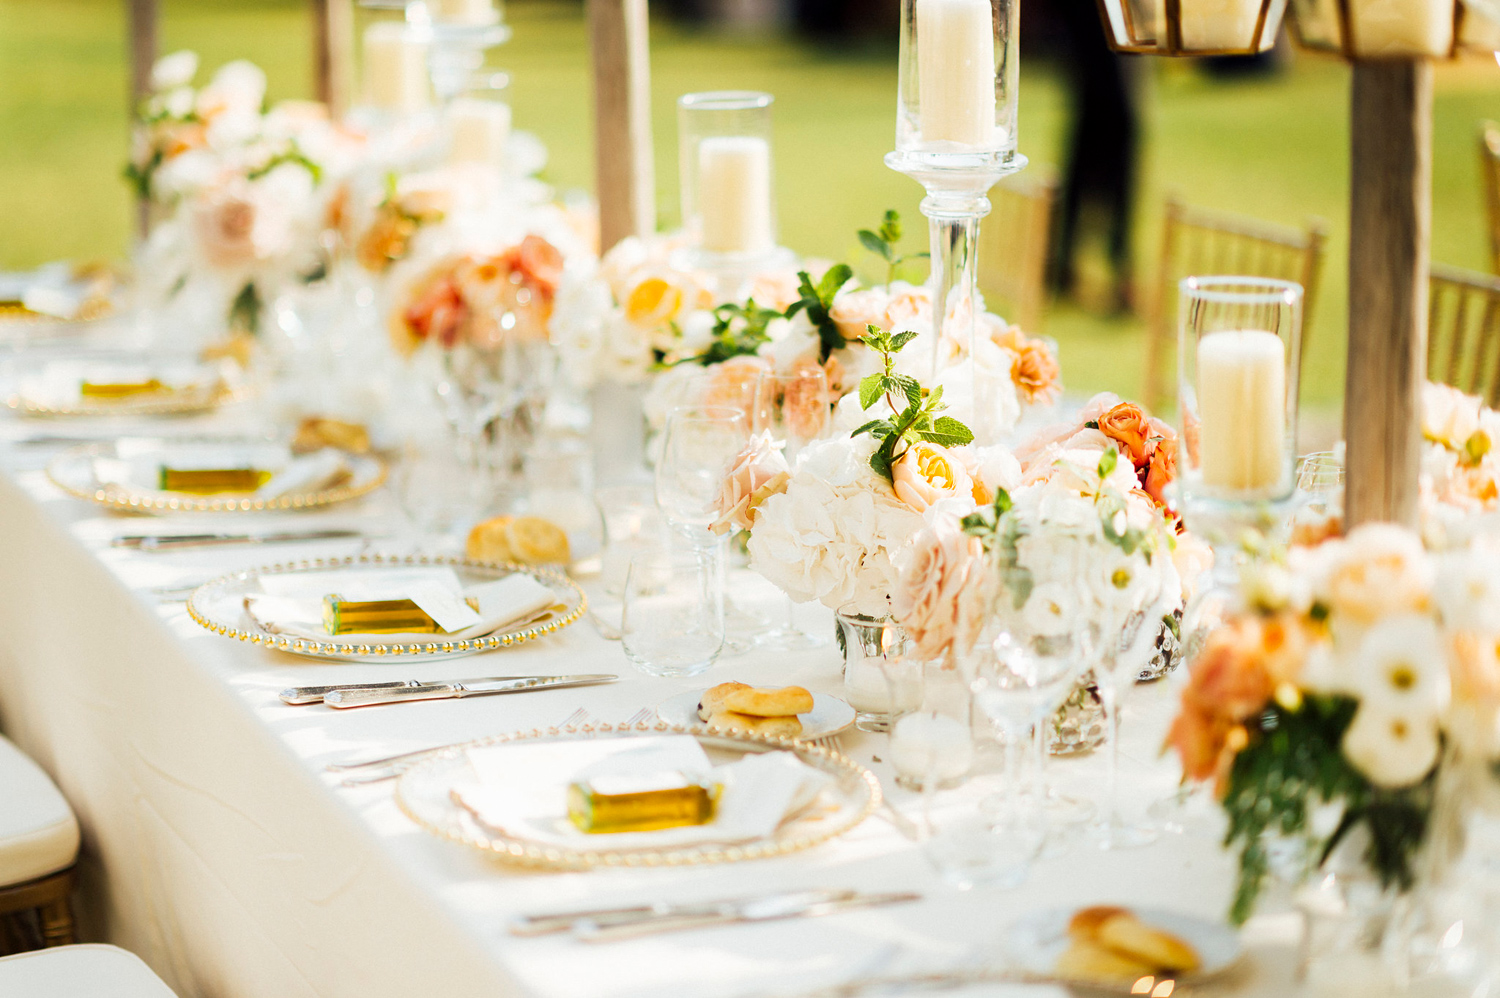 katie_mitchell_wedding_florence_tuscany_villa_di_miano_wedding_photography_45.jpg